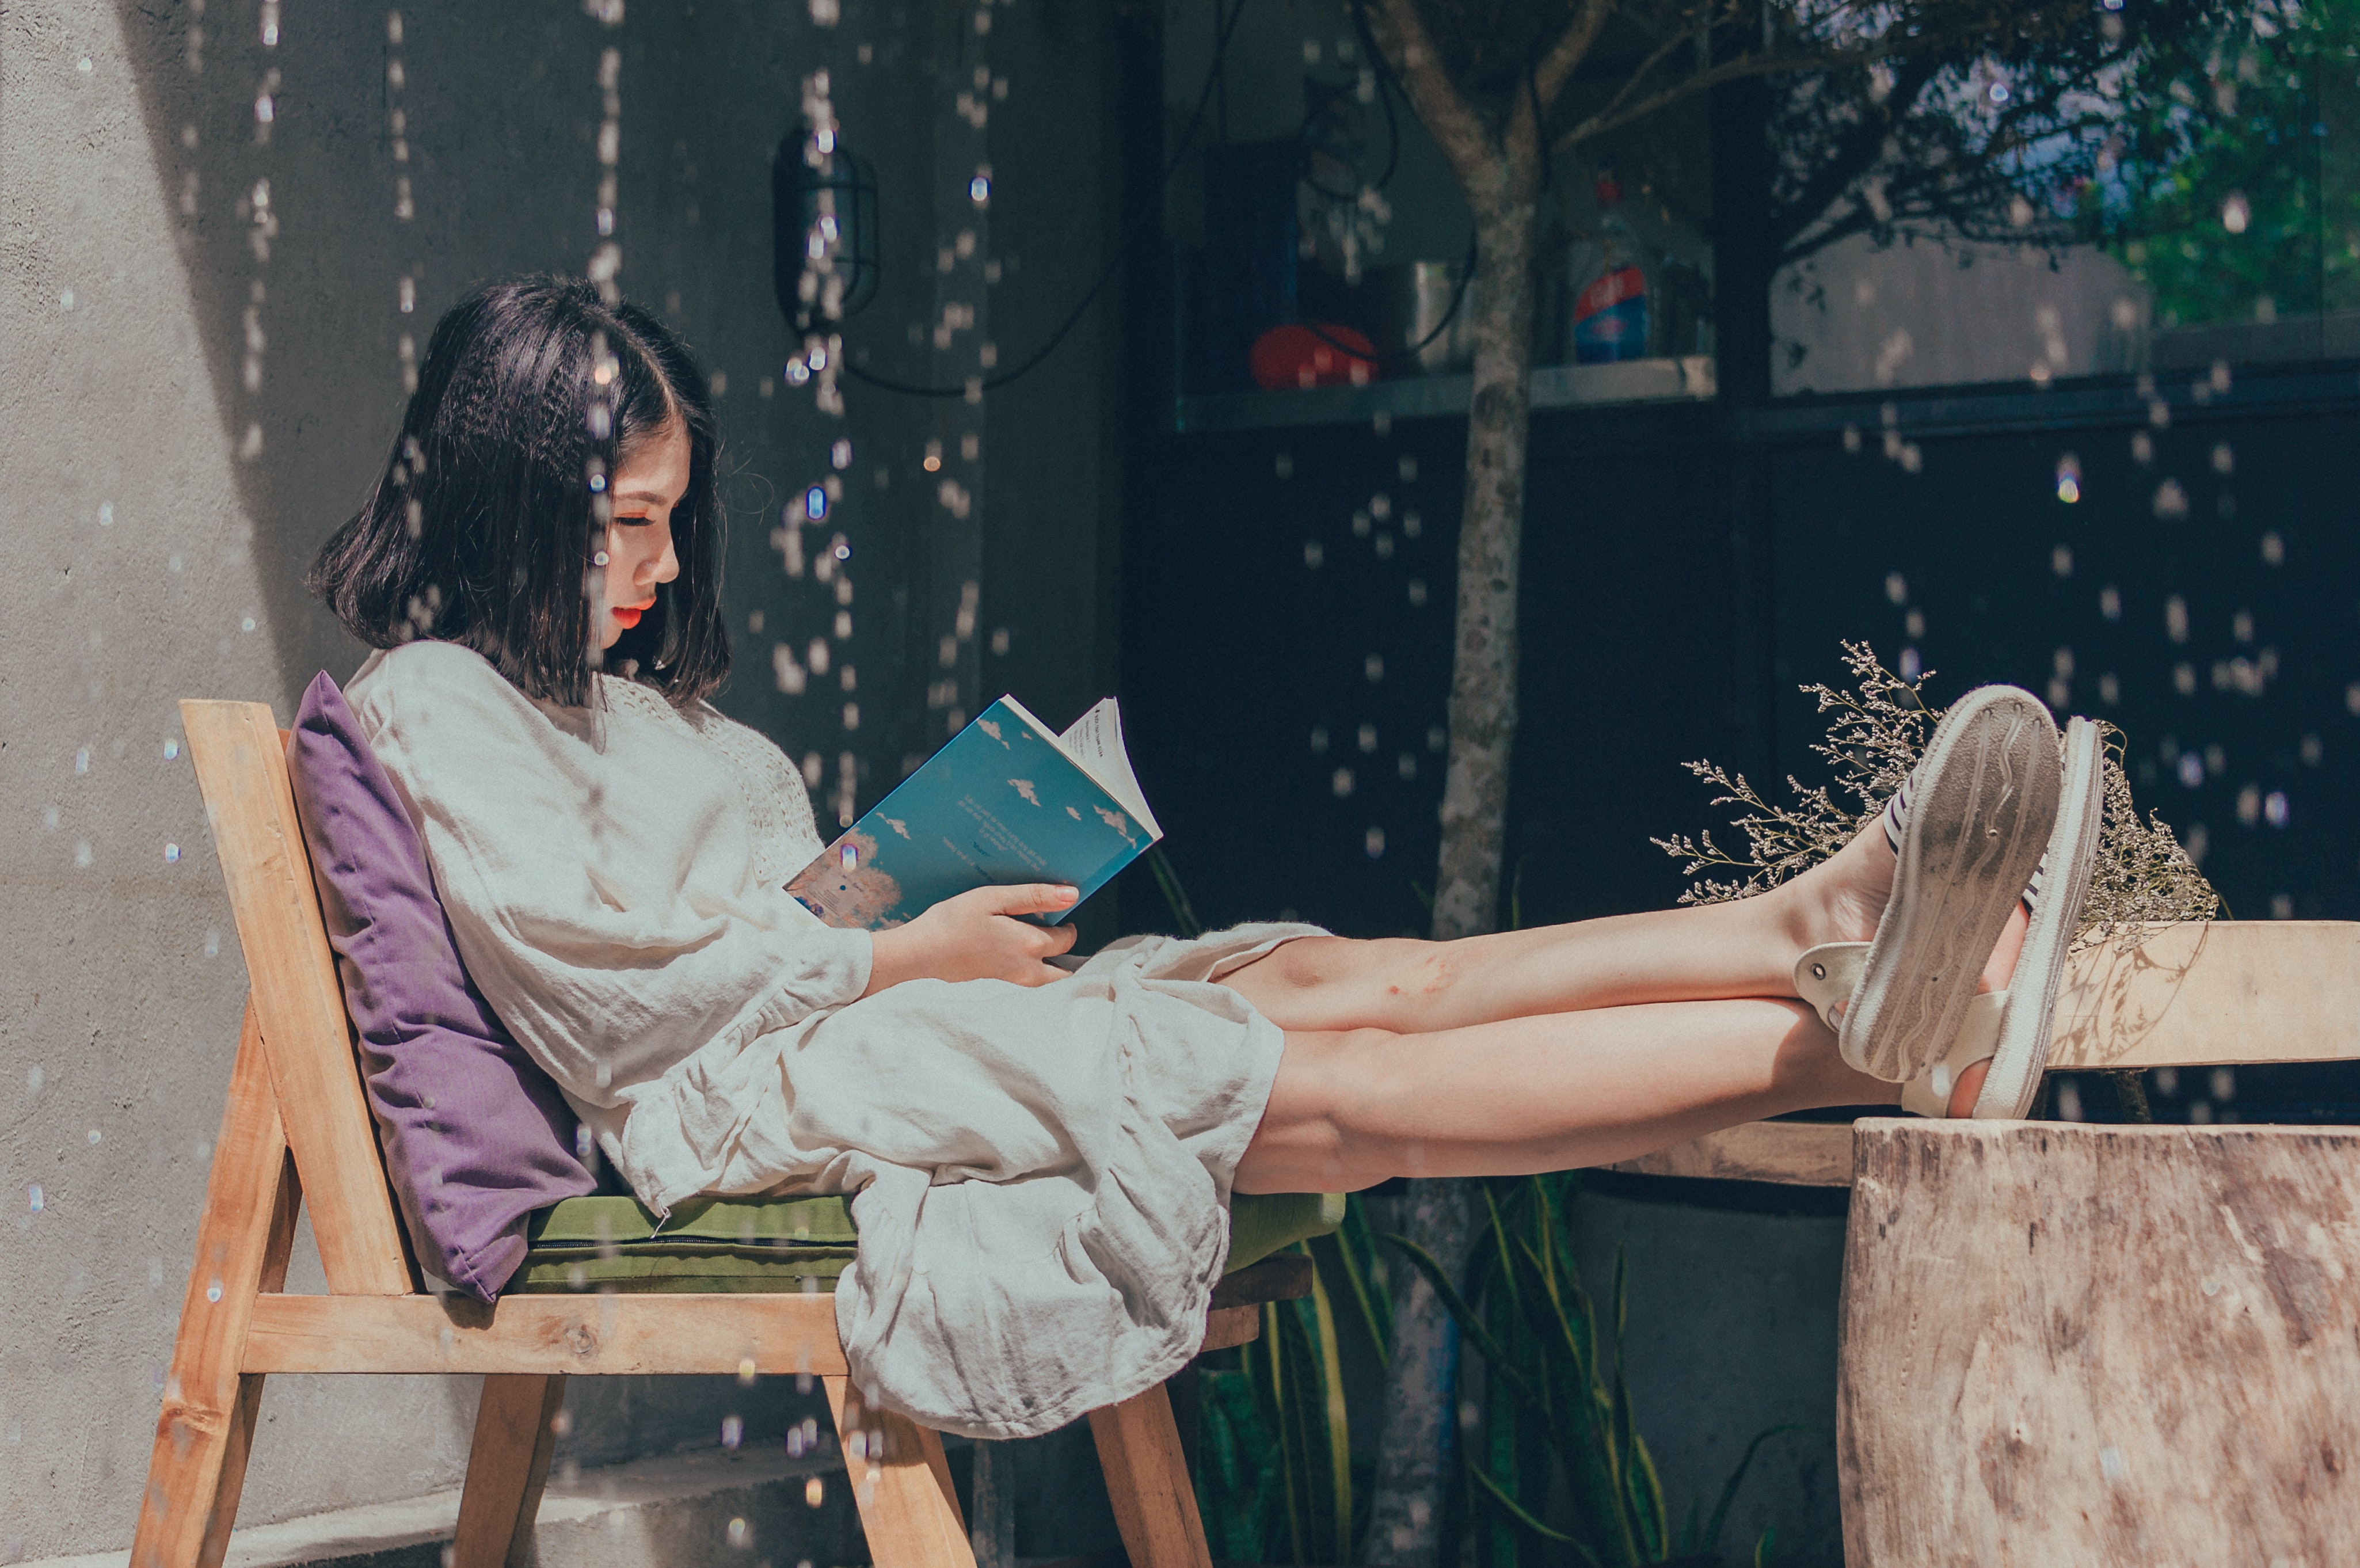 woman-sitting-on-chair-while-reading-book-1115692